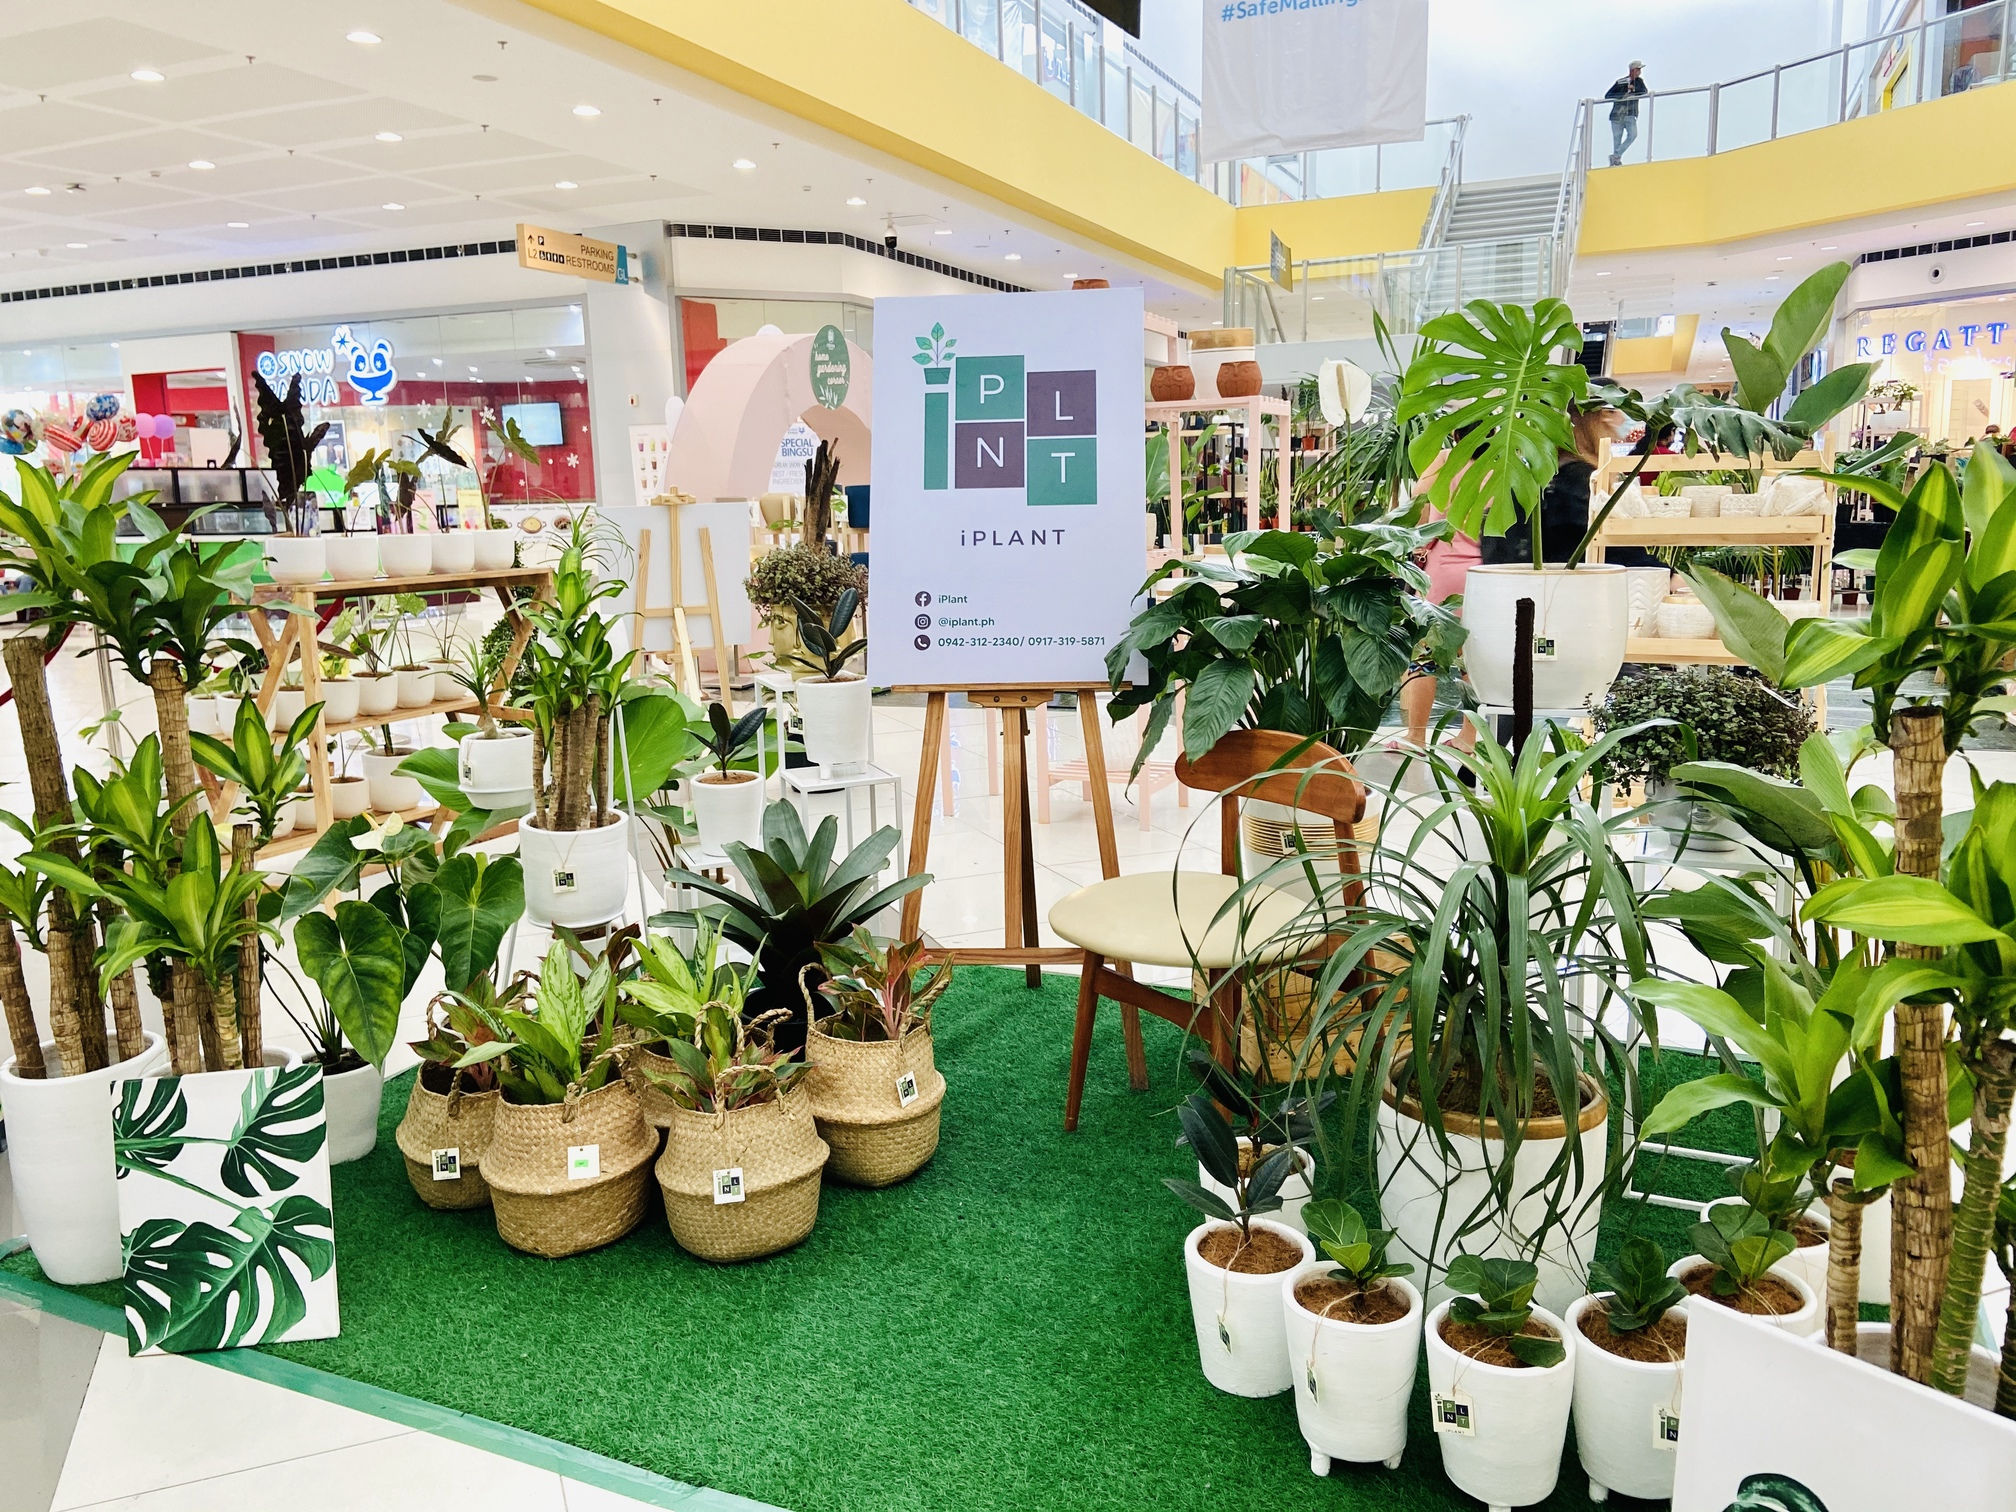 SM Center Pulilan leads help to local growers and plant sellers